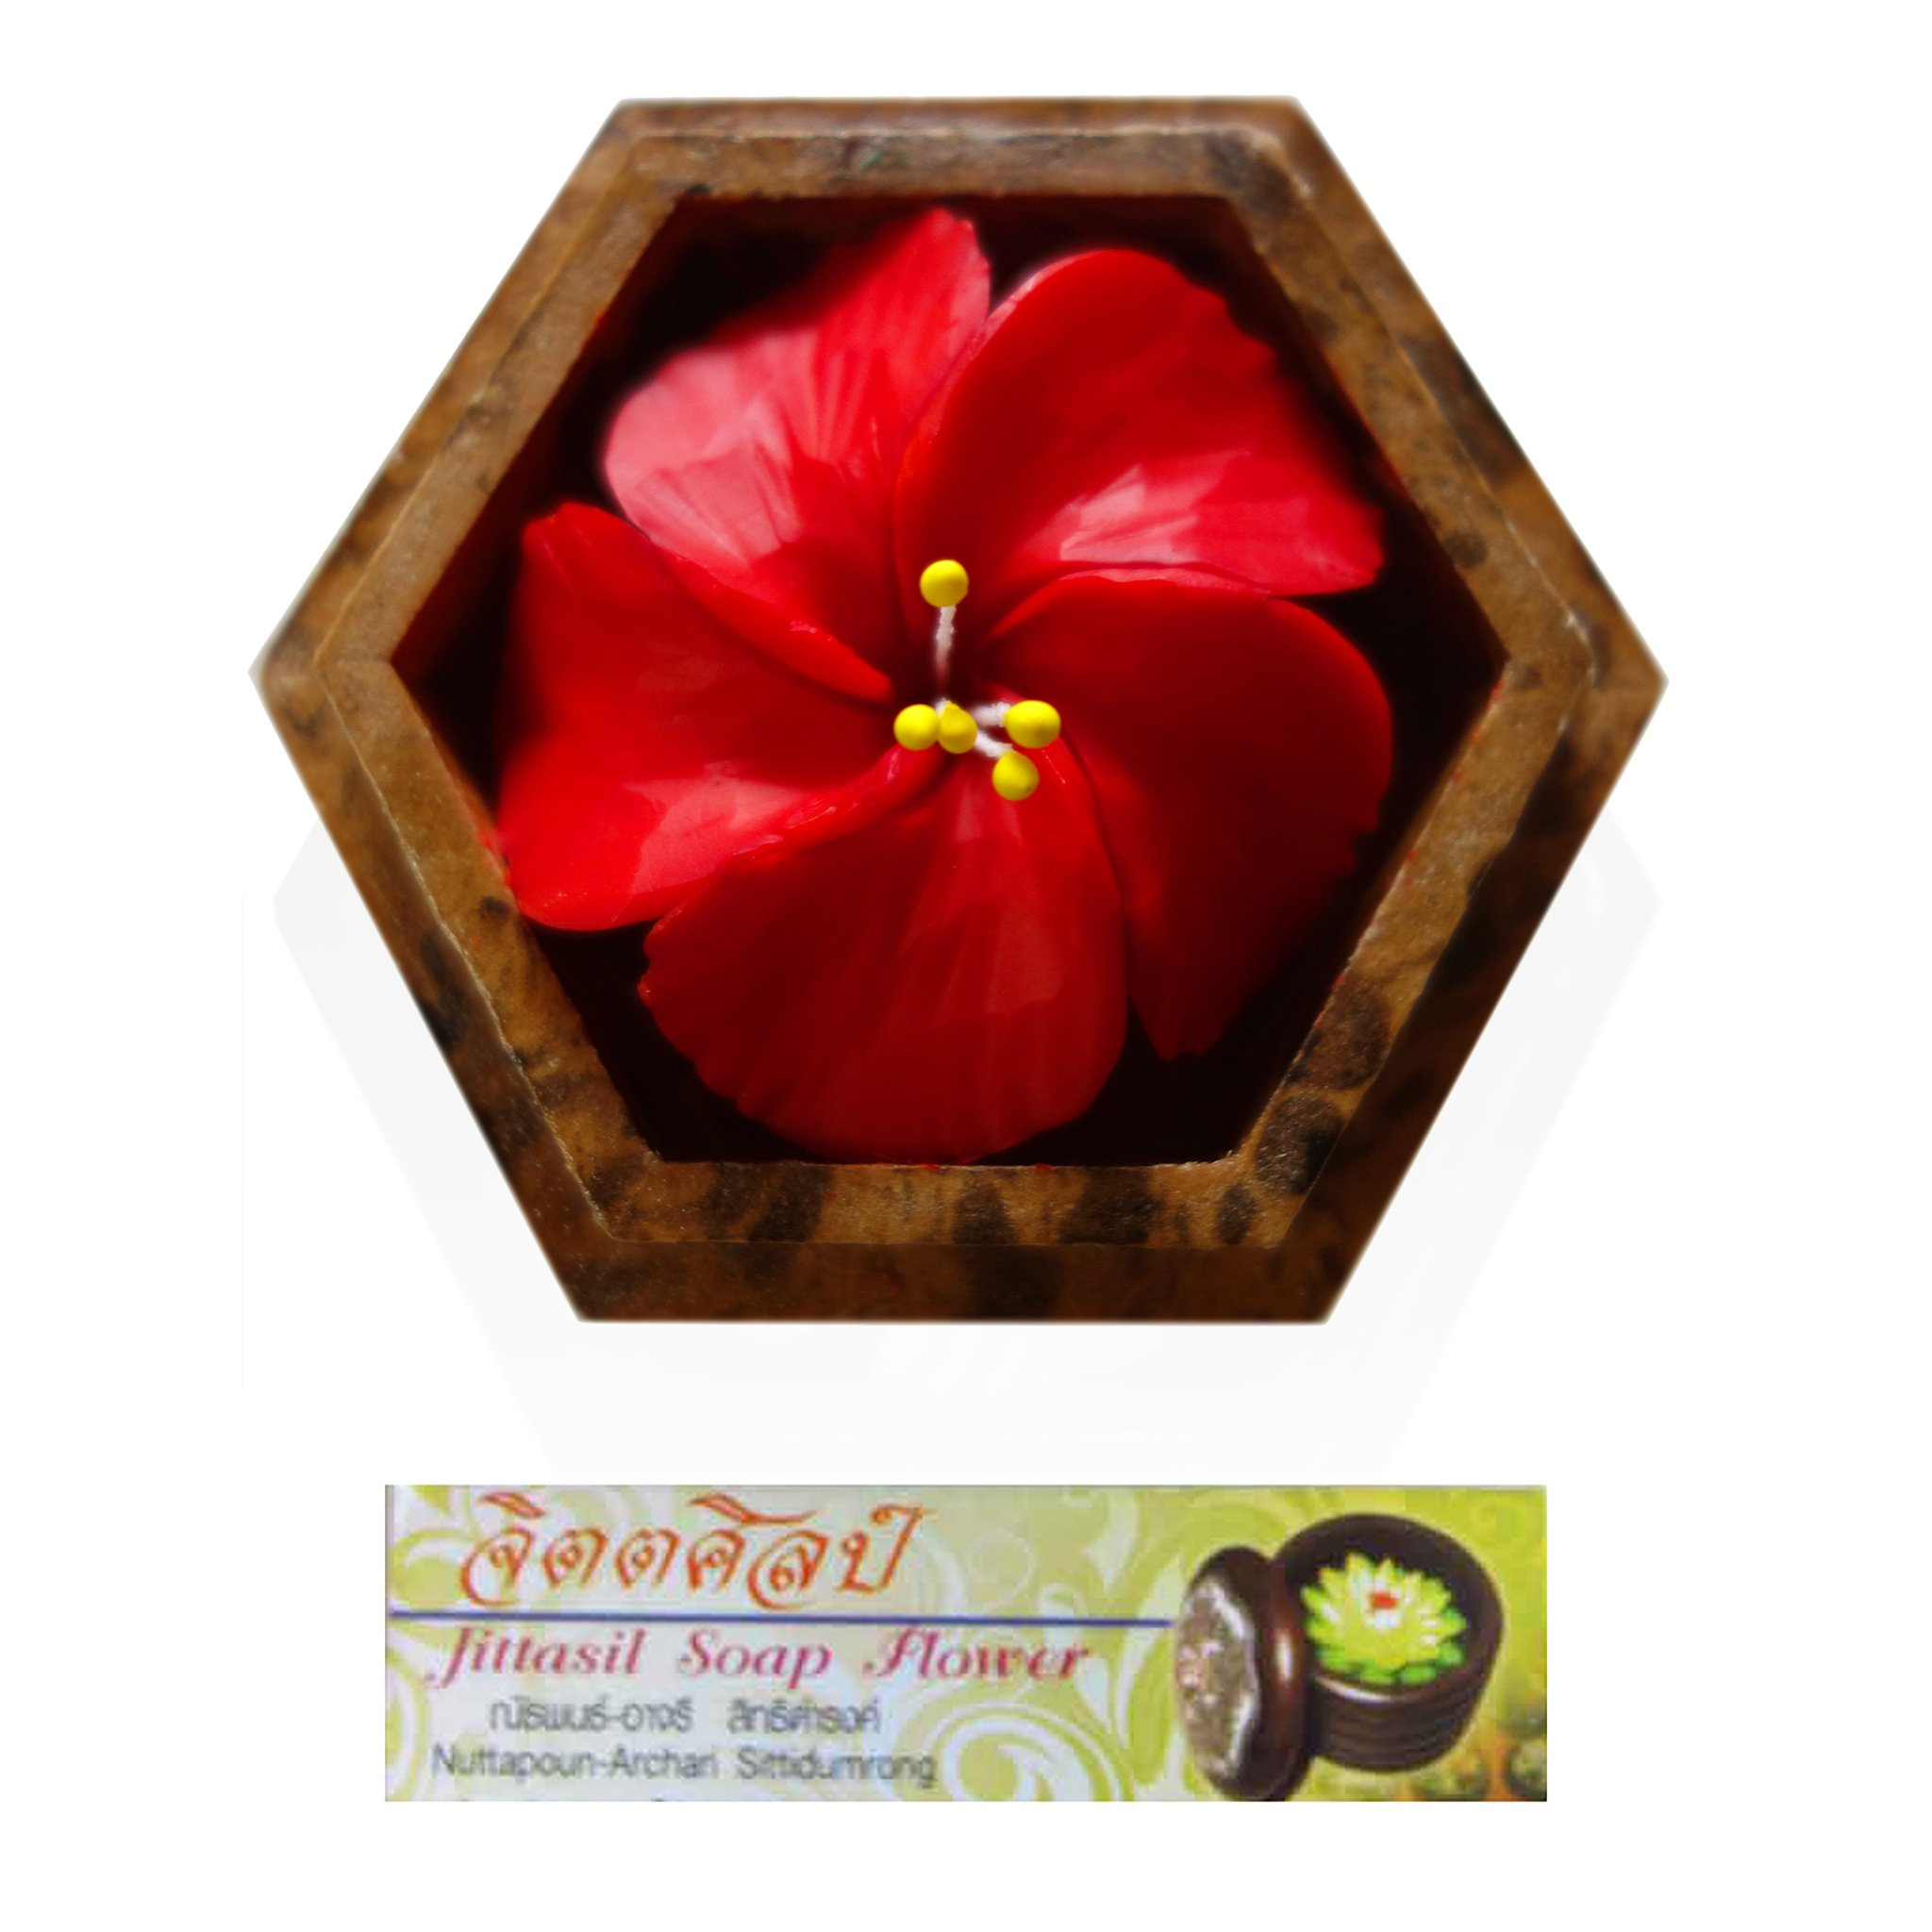 Jittasil Thai Hand-Carved Soap Flower, 4 Inch Scented Soap Carving Gift-Set, Red Hibiscus In Decorative Hexagonal Wood Case